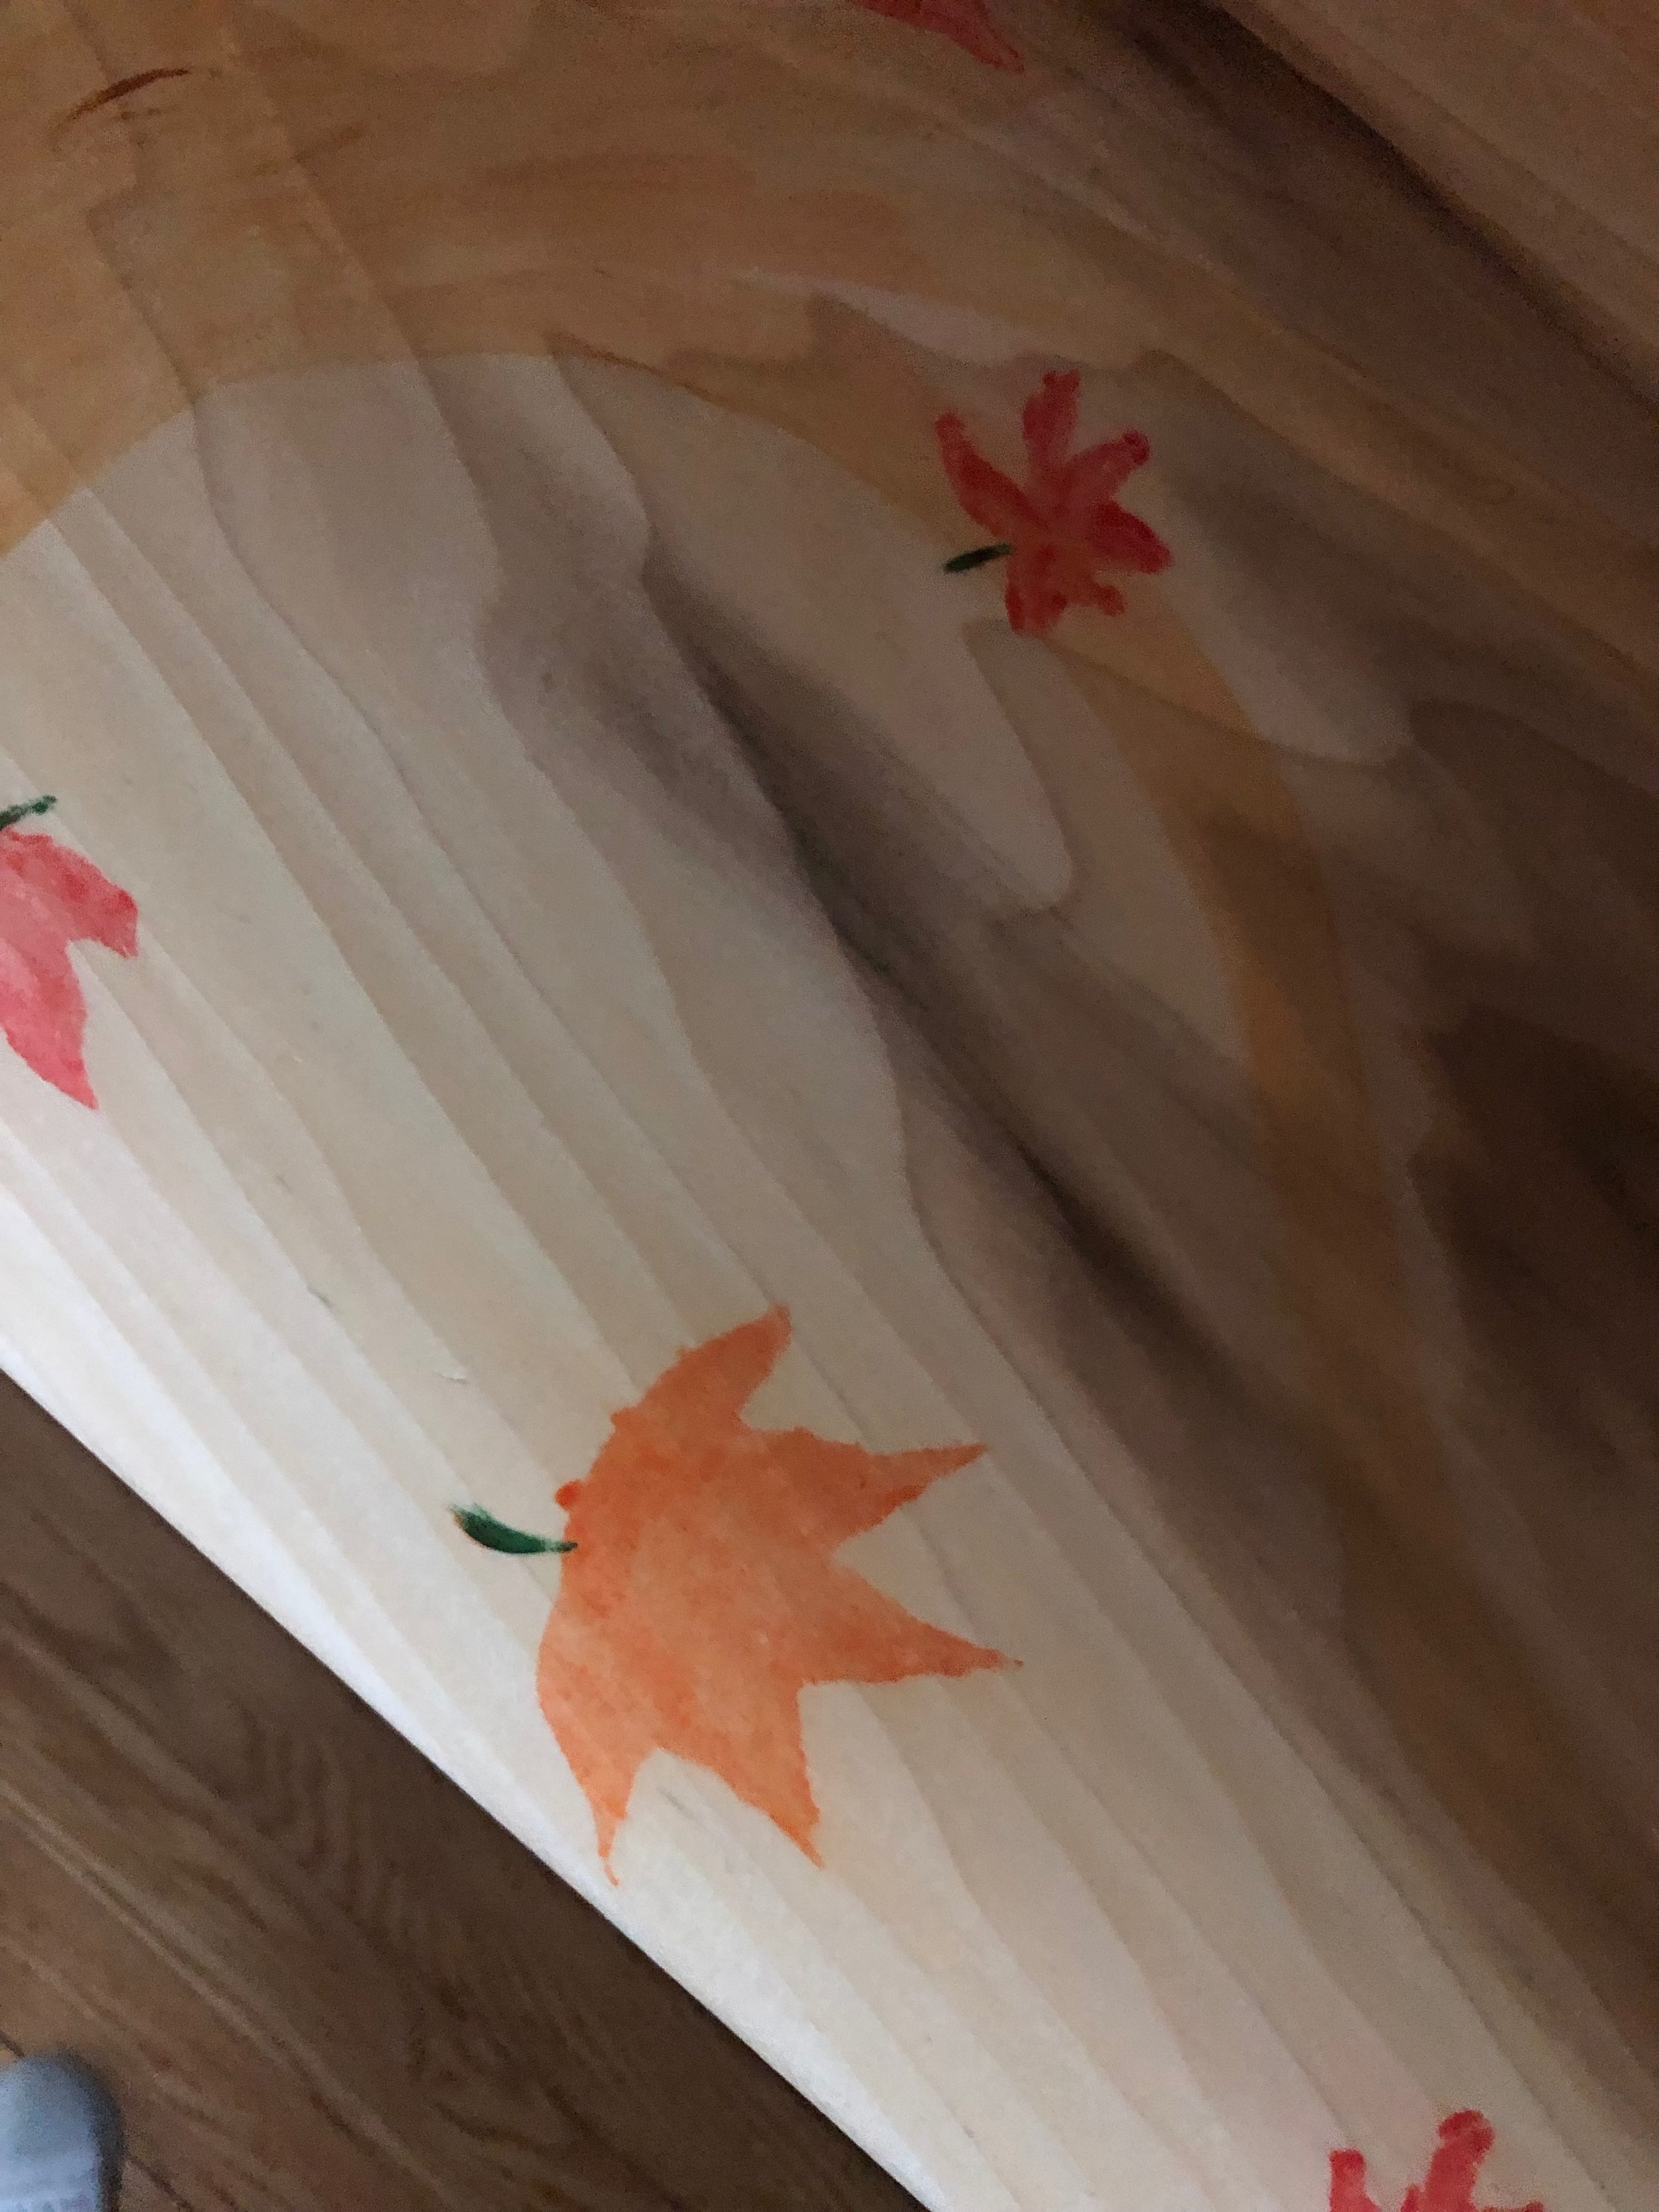 maple leaf theme mirrors the tree outside